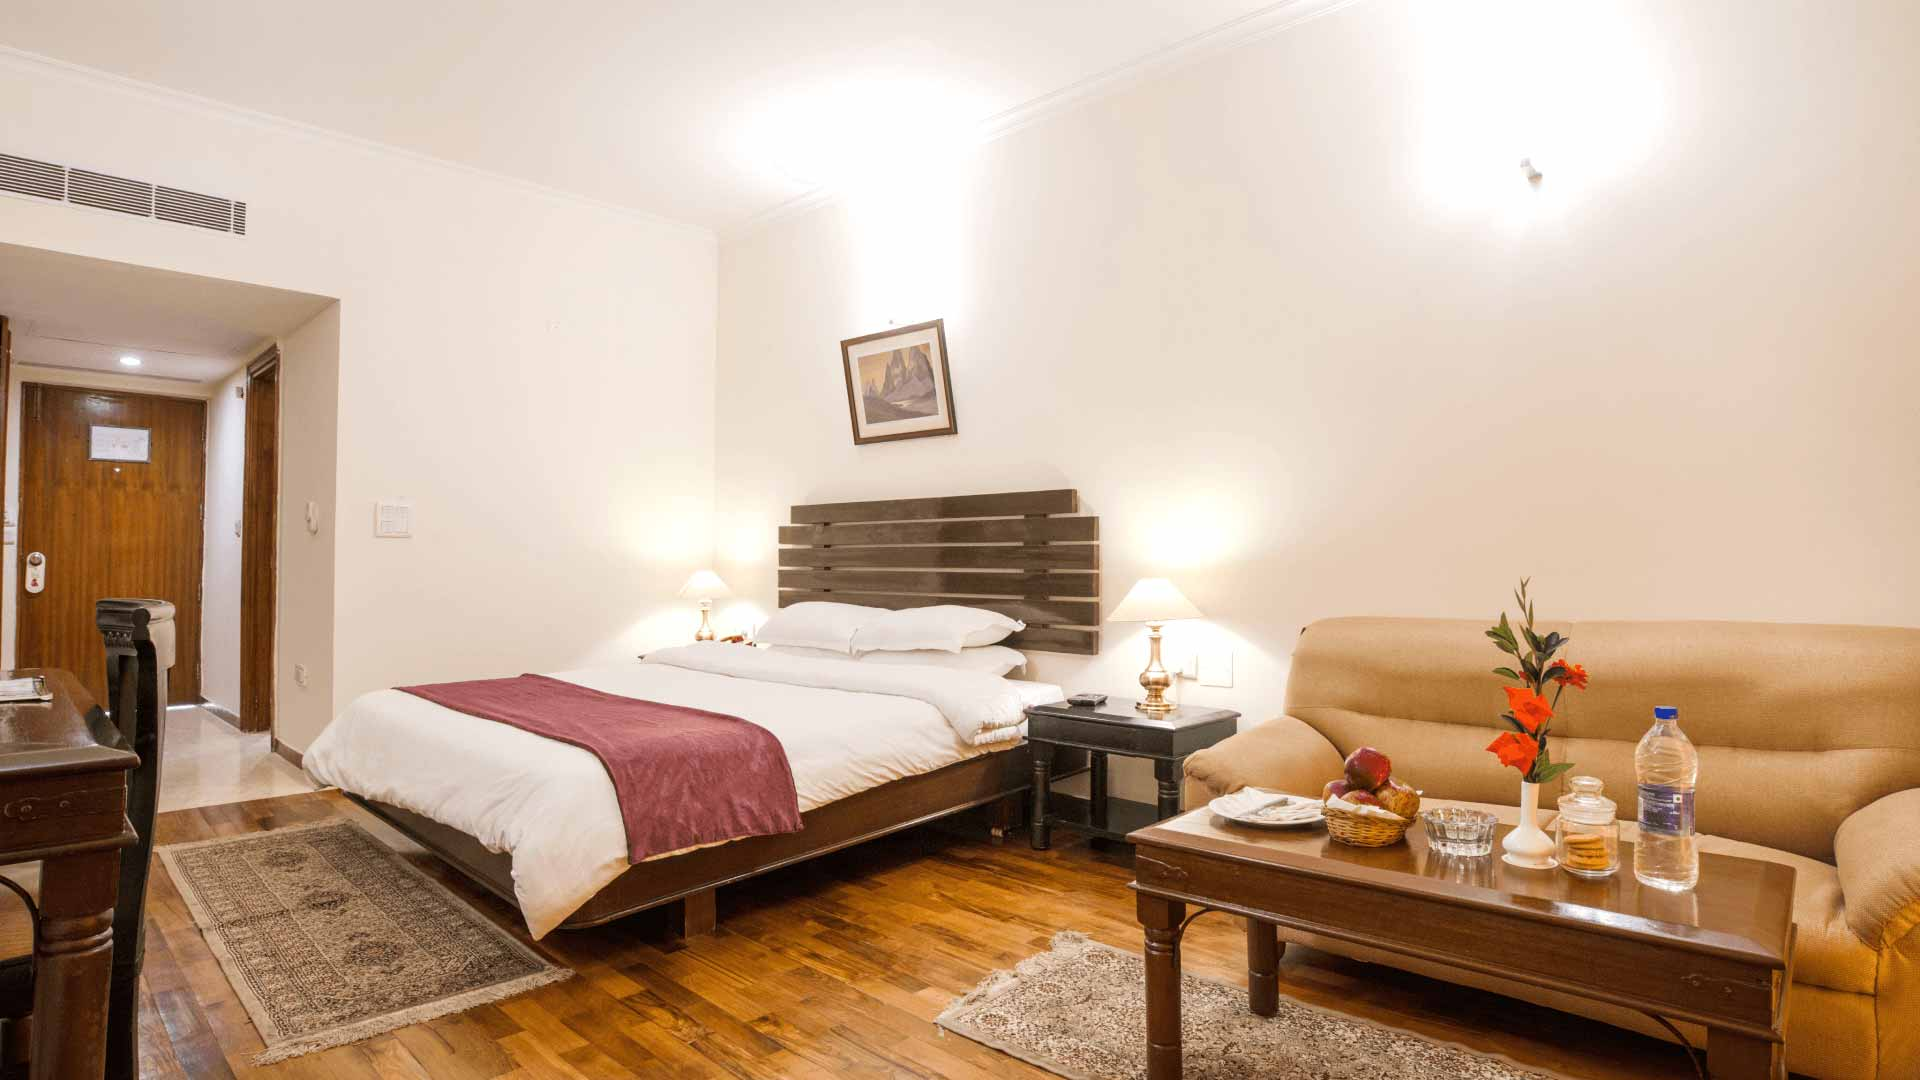 5 Star Hotels in Manali